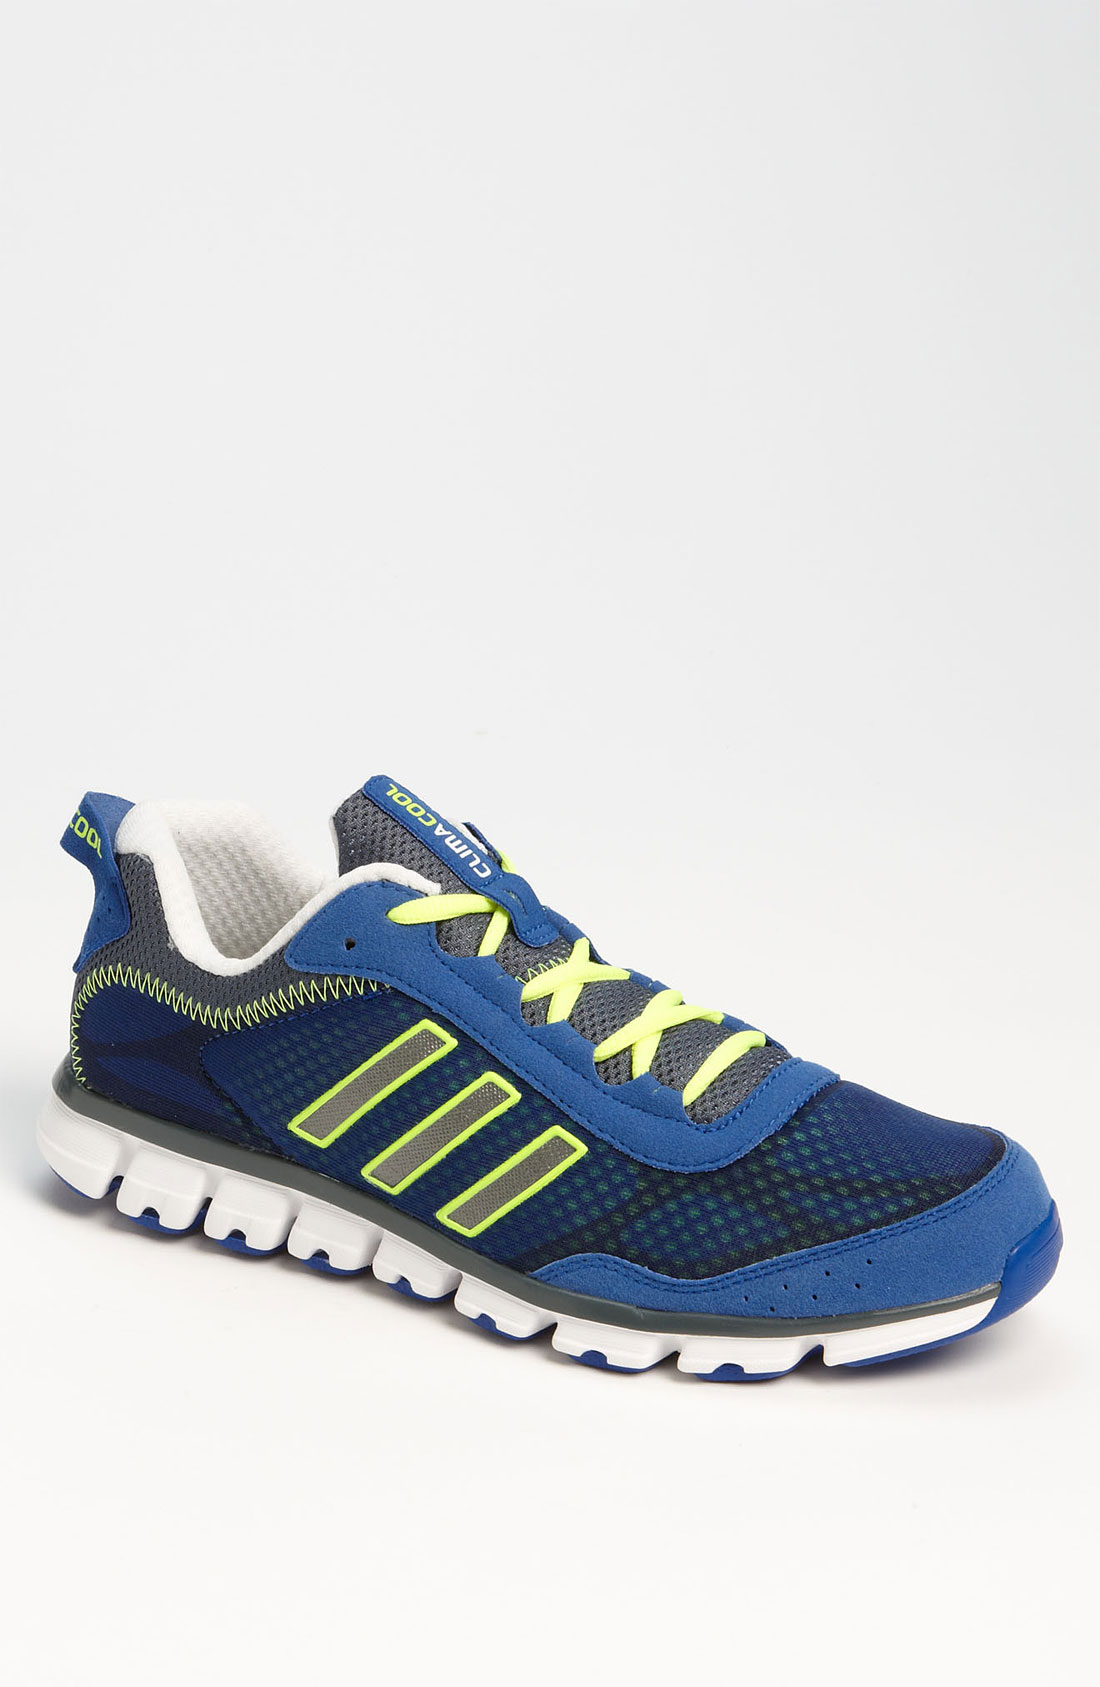 Adidas Climacool Neutral Running Shoes